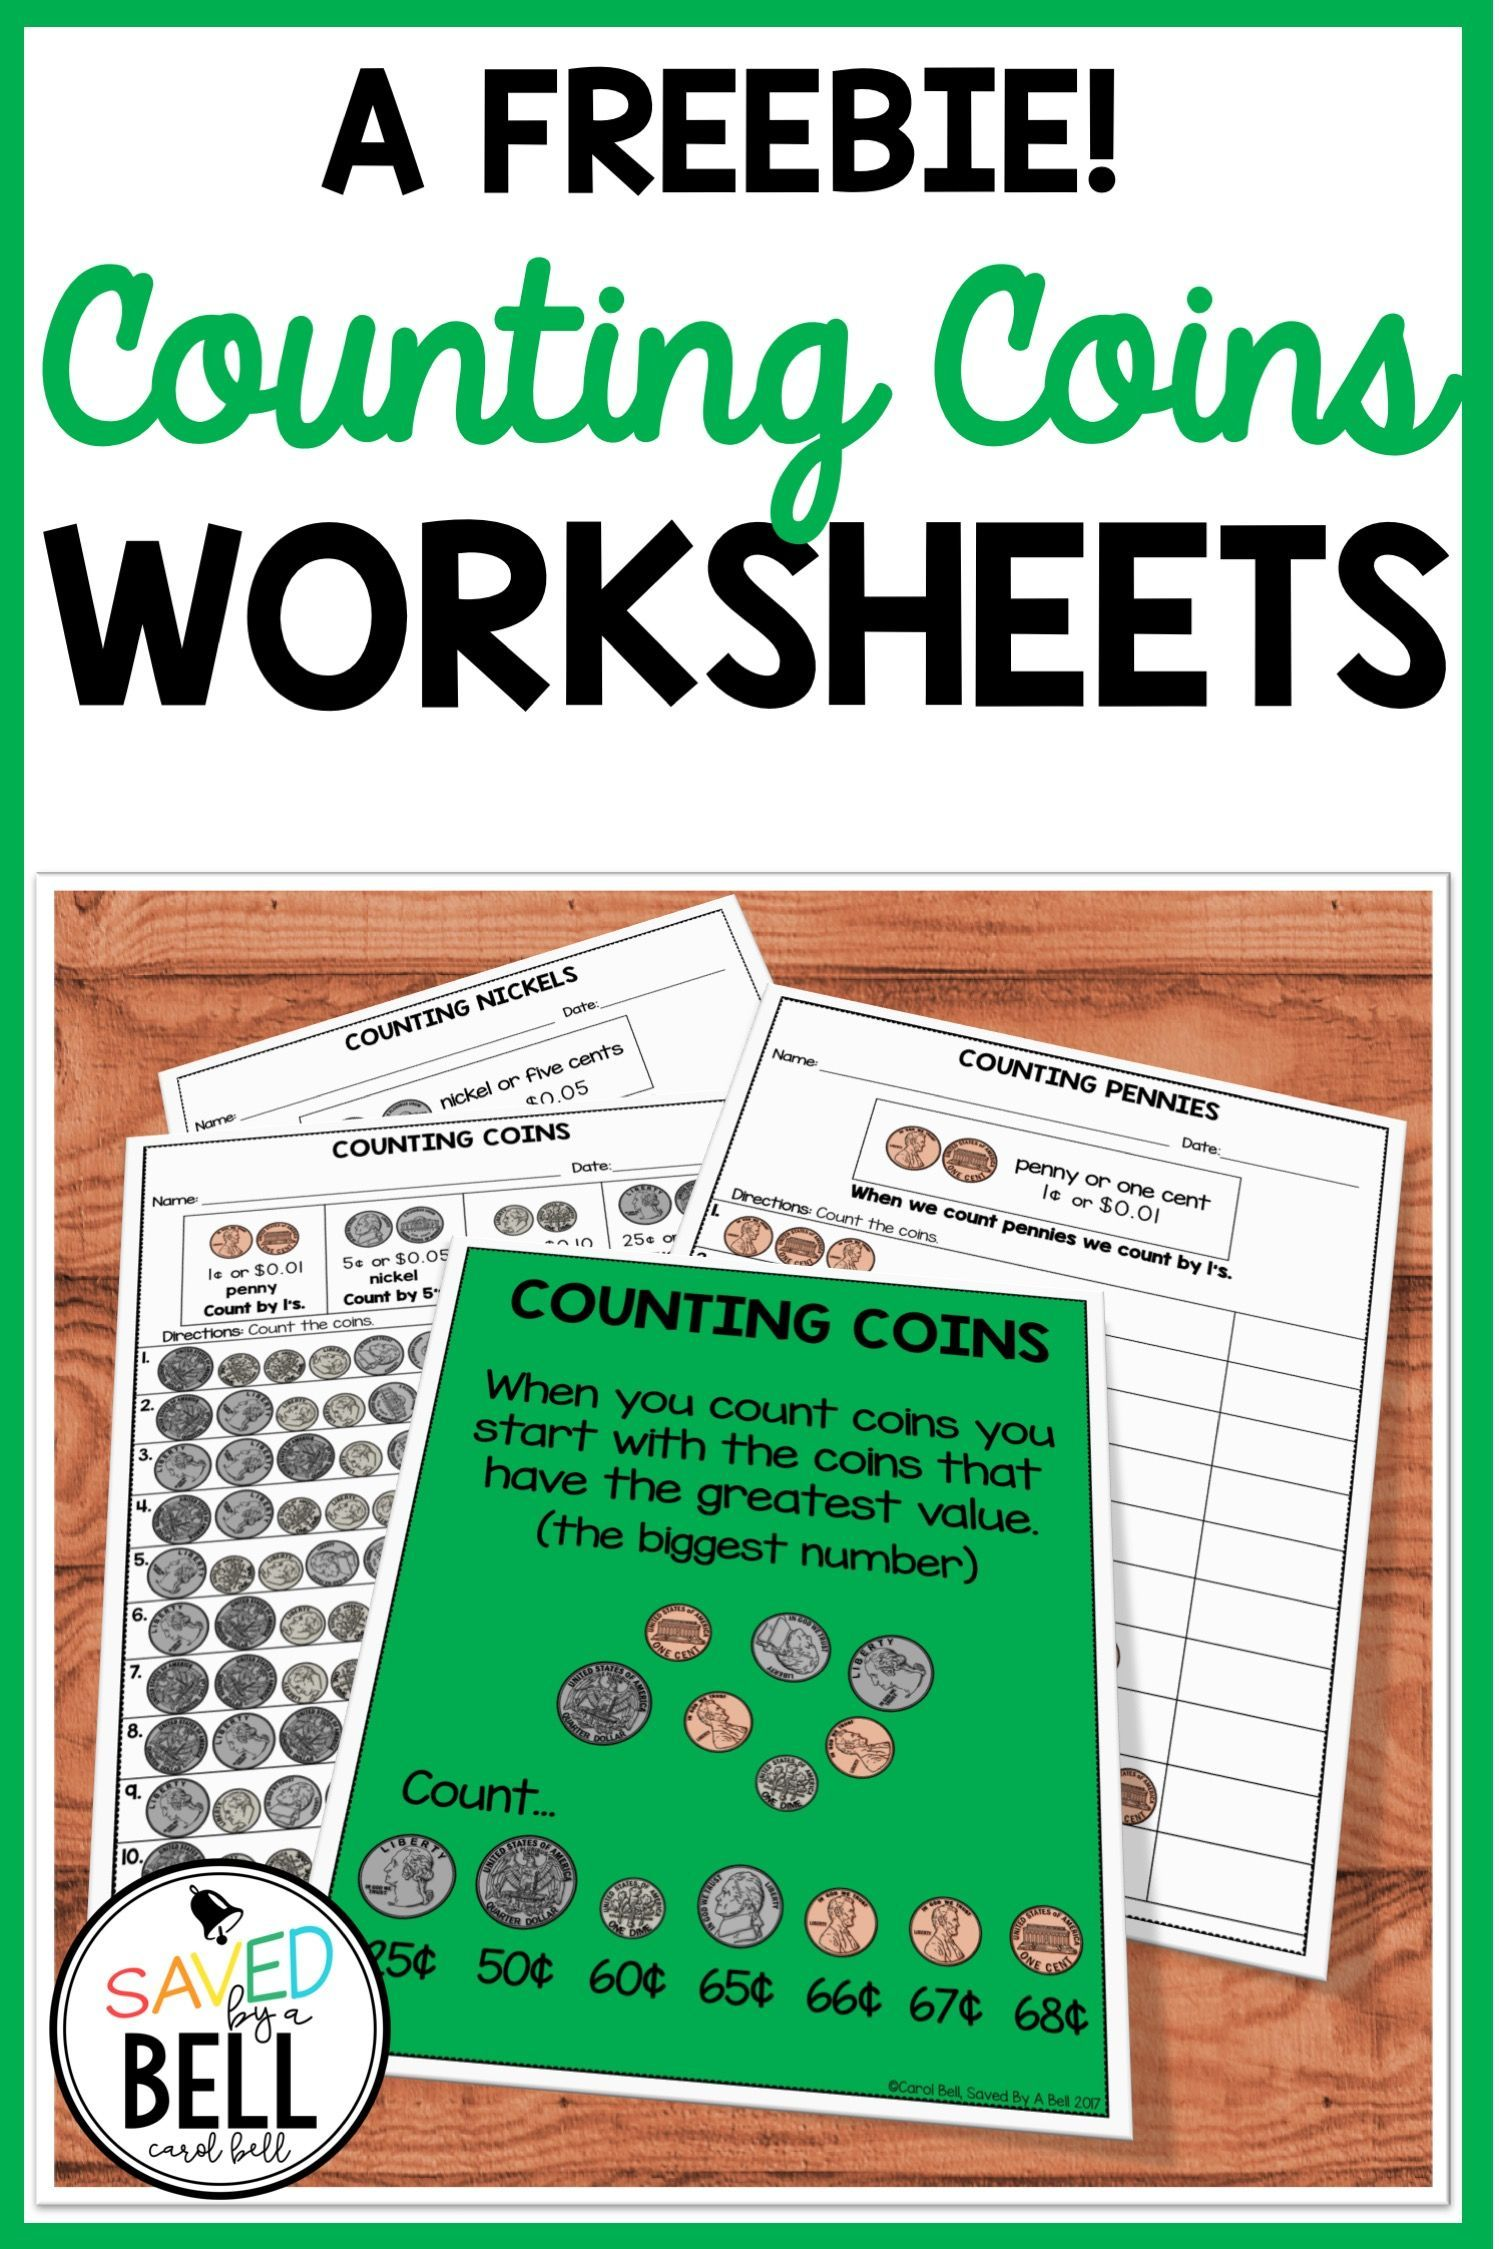 Free Counting Coins Worksheets No Prep Just Print And Go These Are Great For Older Kids With S Counting Coins Worksheet Free Math Worksheets Counting Coins [ 2249 x 1499 Pixel ]